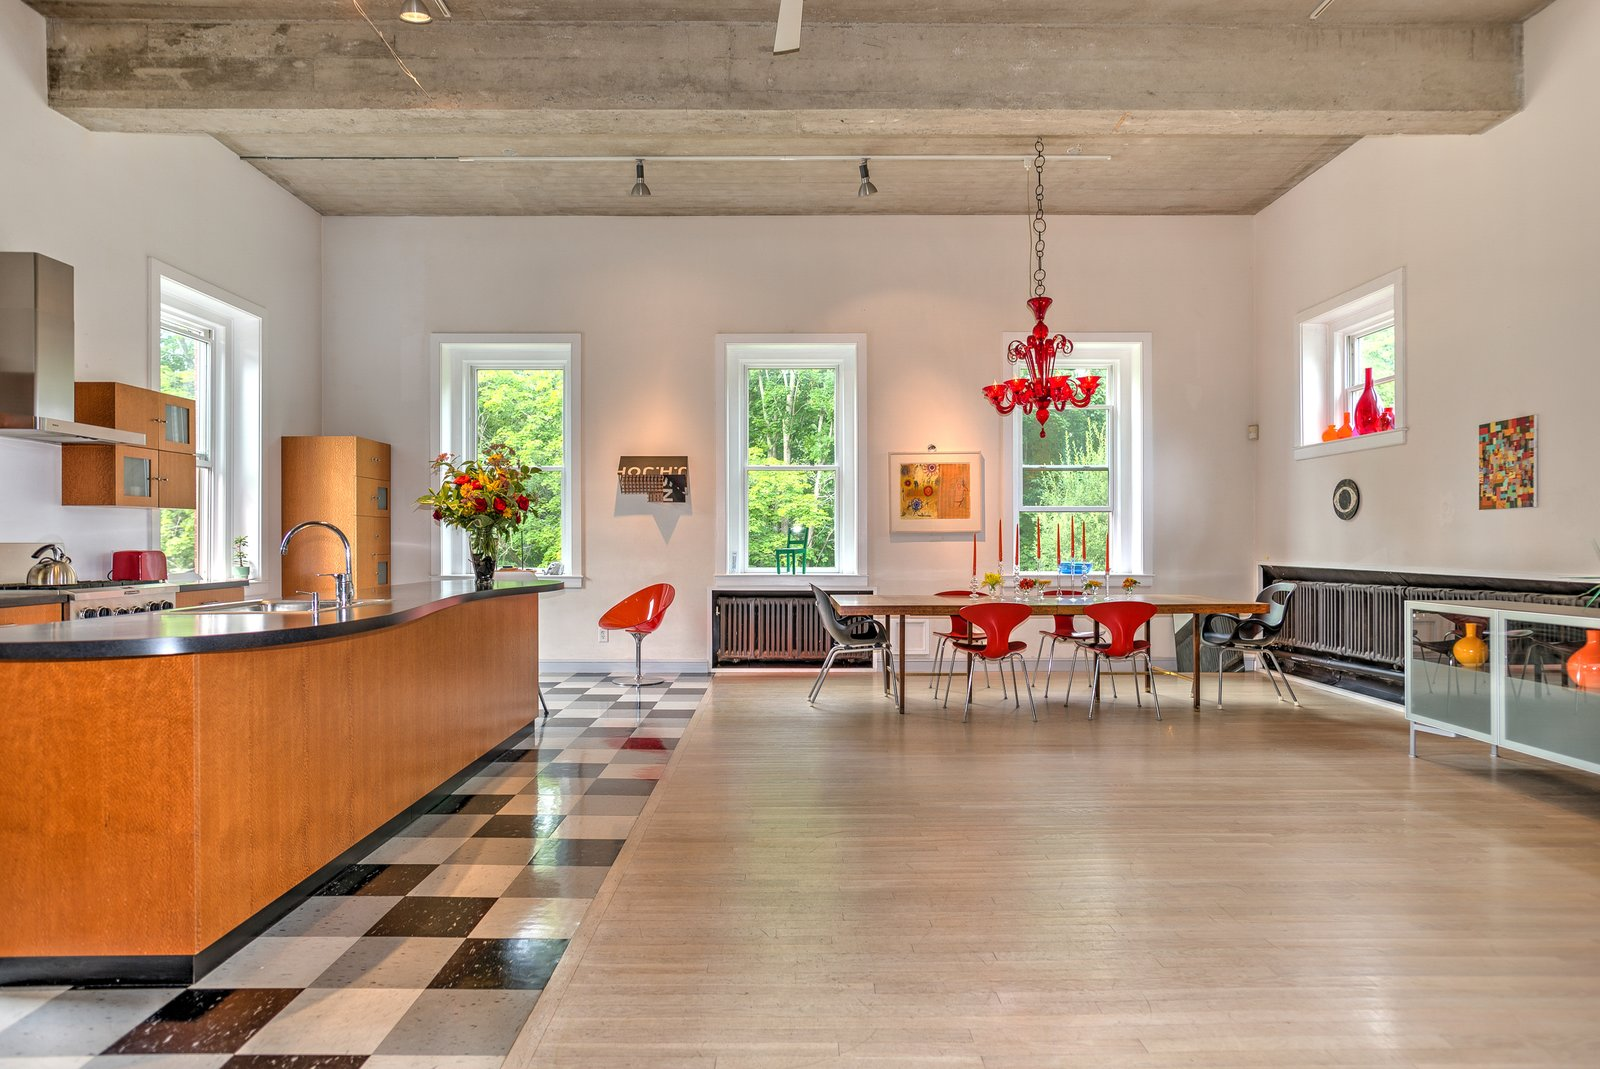 The first floor holds an integrated living room, dining room, and kitchen. When Reed and Blackburn bought the firehouse, the concrete floors were stained with oil from the firetrucks, so they laid stained white oak flooring. They also sandblasted the ceiling to its original concrete finish. A red Murano glass chandelier hangs over a vintage Danish dining table and Bernhardt Design Orbit chairs.  Photo 2 of 9 in A Converted Firehouse Fit For an Artist Is Listed at $749K